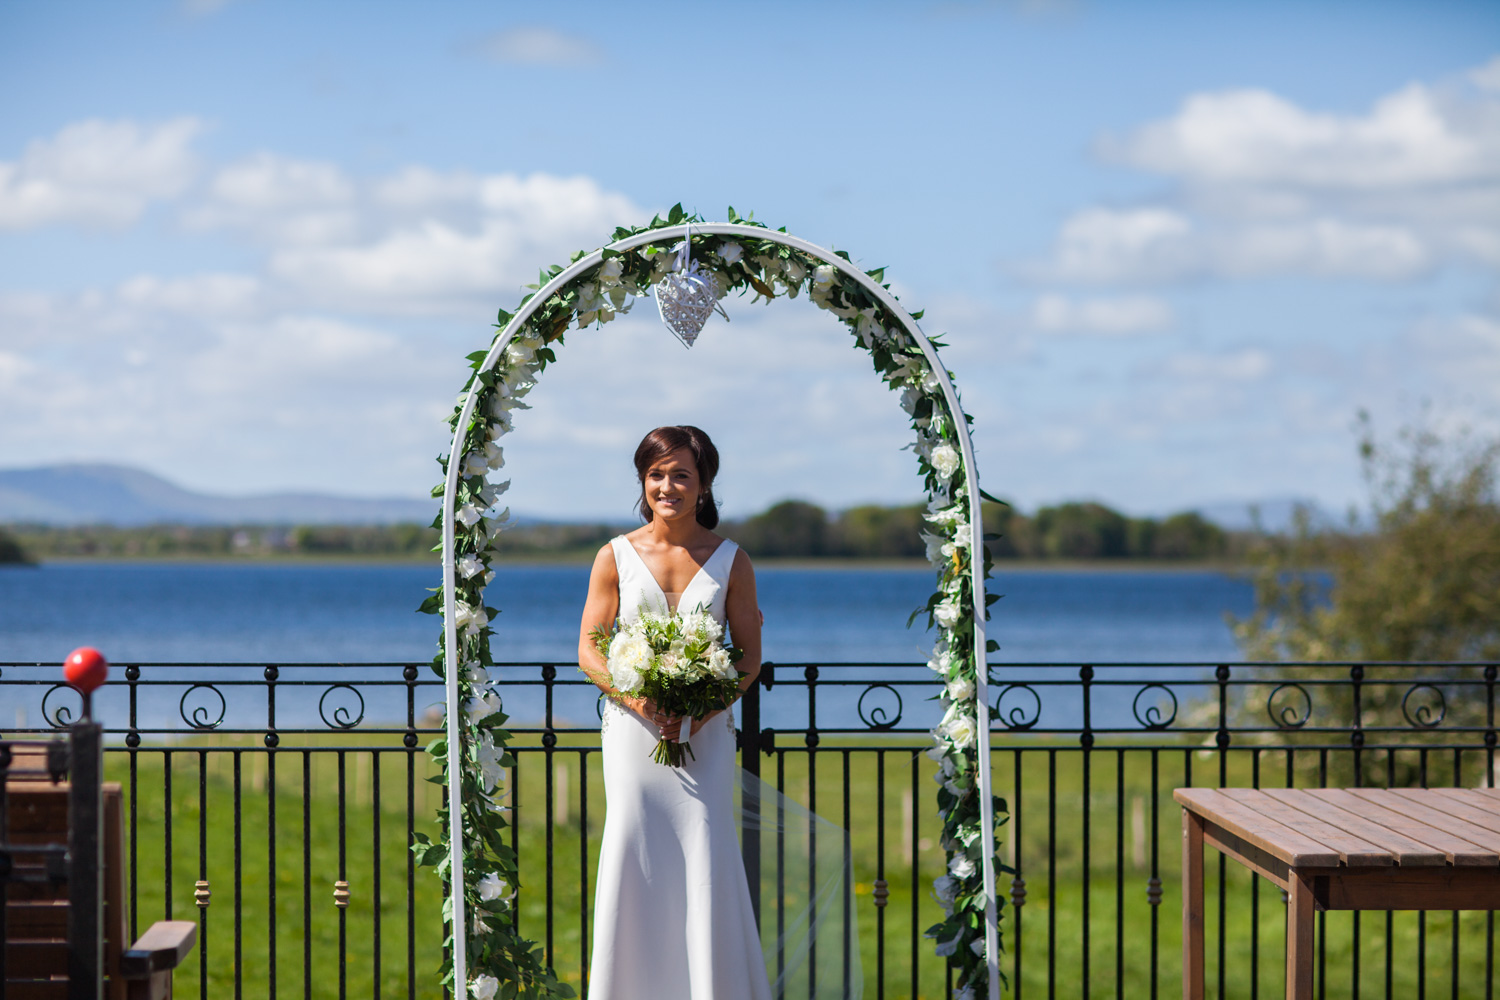 Mark_Barnes_Northern_Ireland_wedding_photographer_redcastle_hotel_Donegal_Wedding_photography_Donegal_wedding_photographer-12.jpg